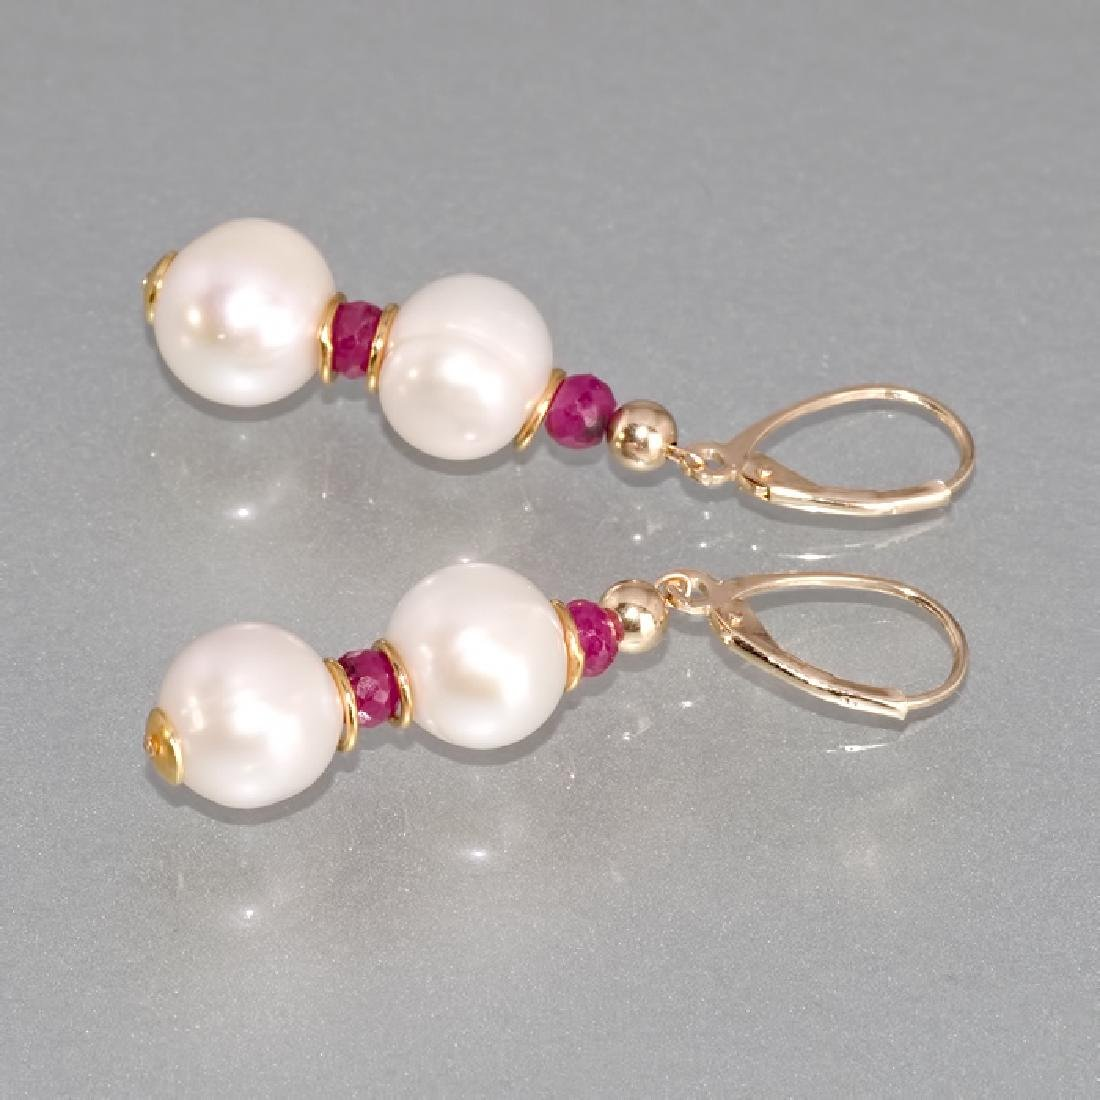 Classic Style Pearls and Rubies Earrings - 3